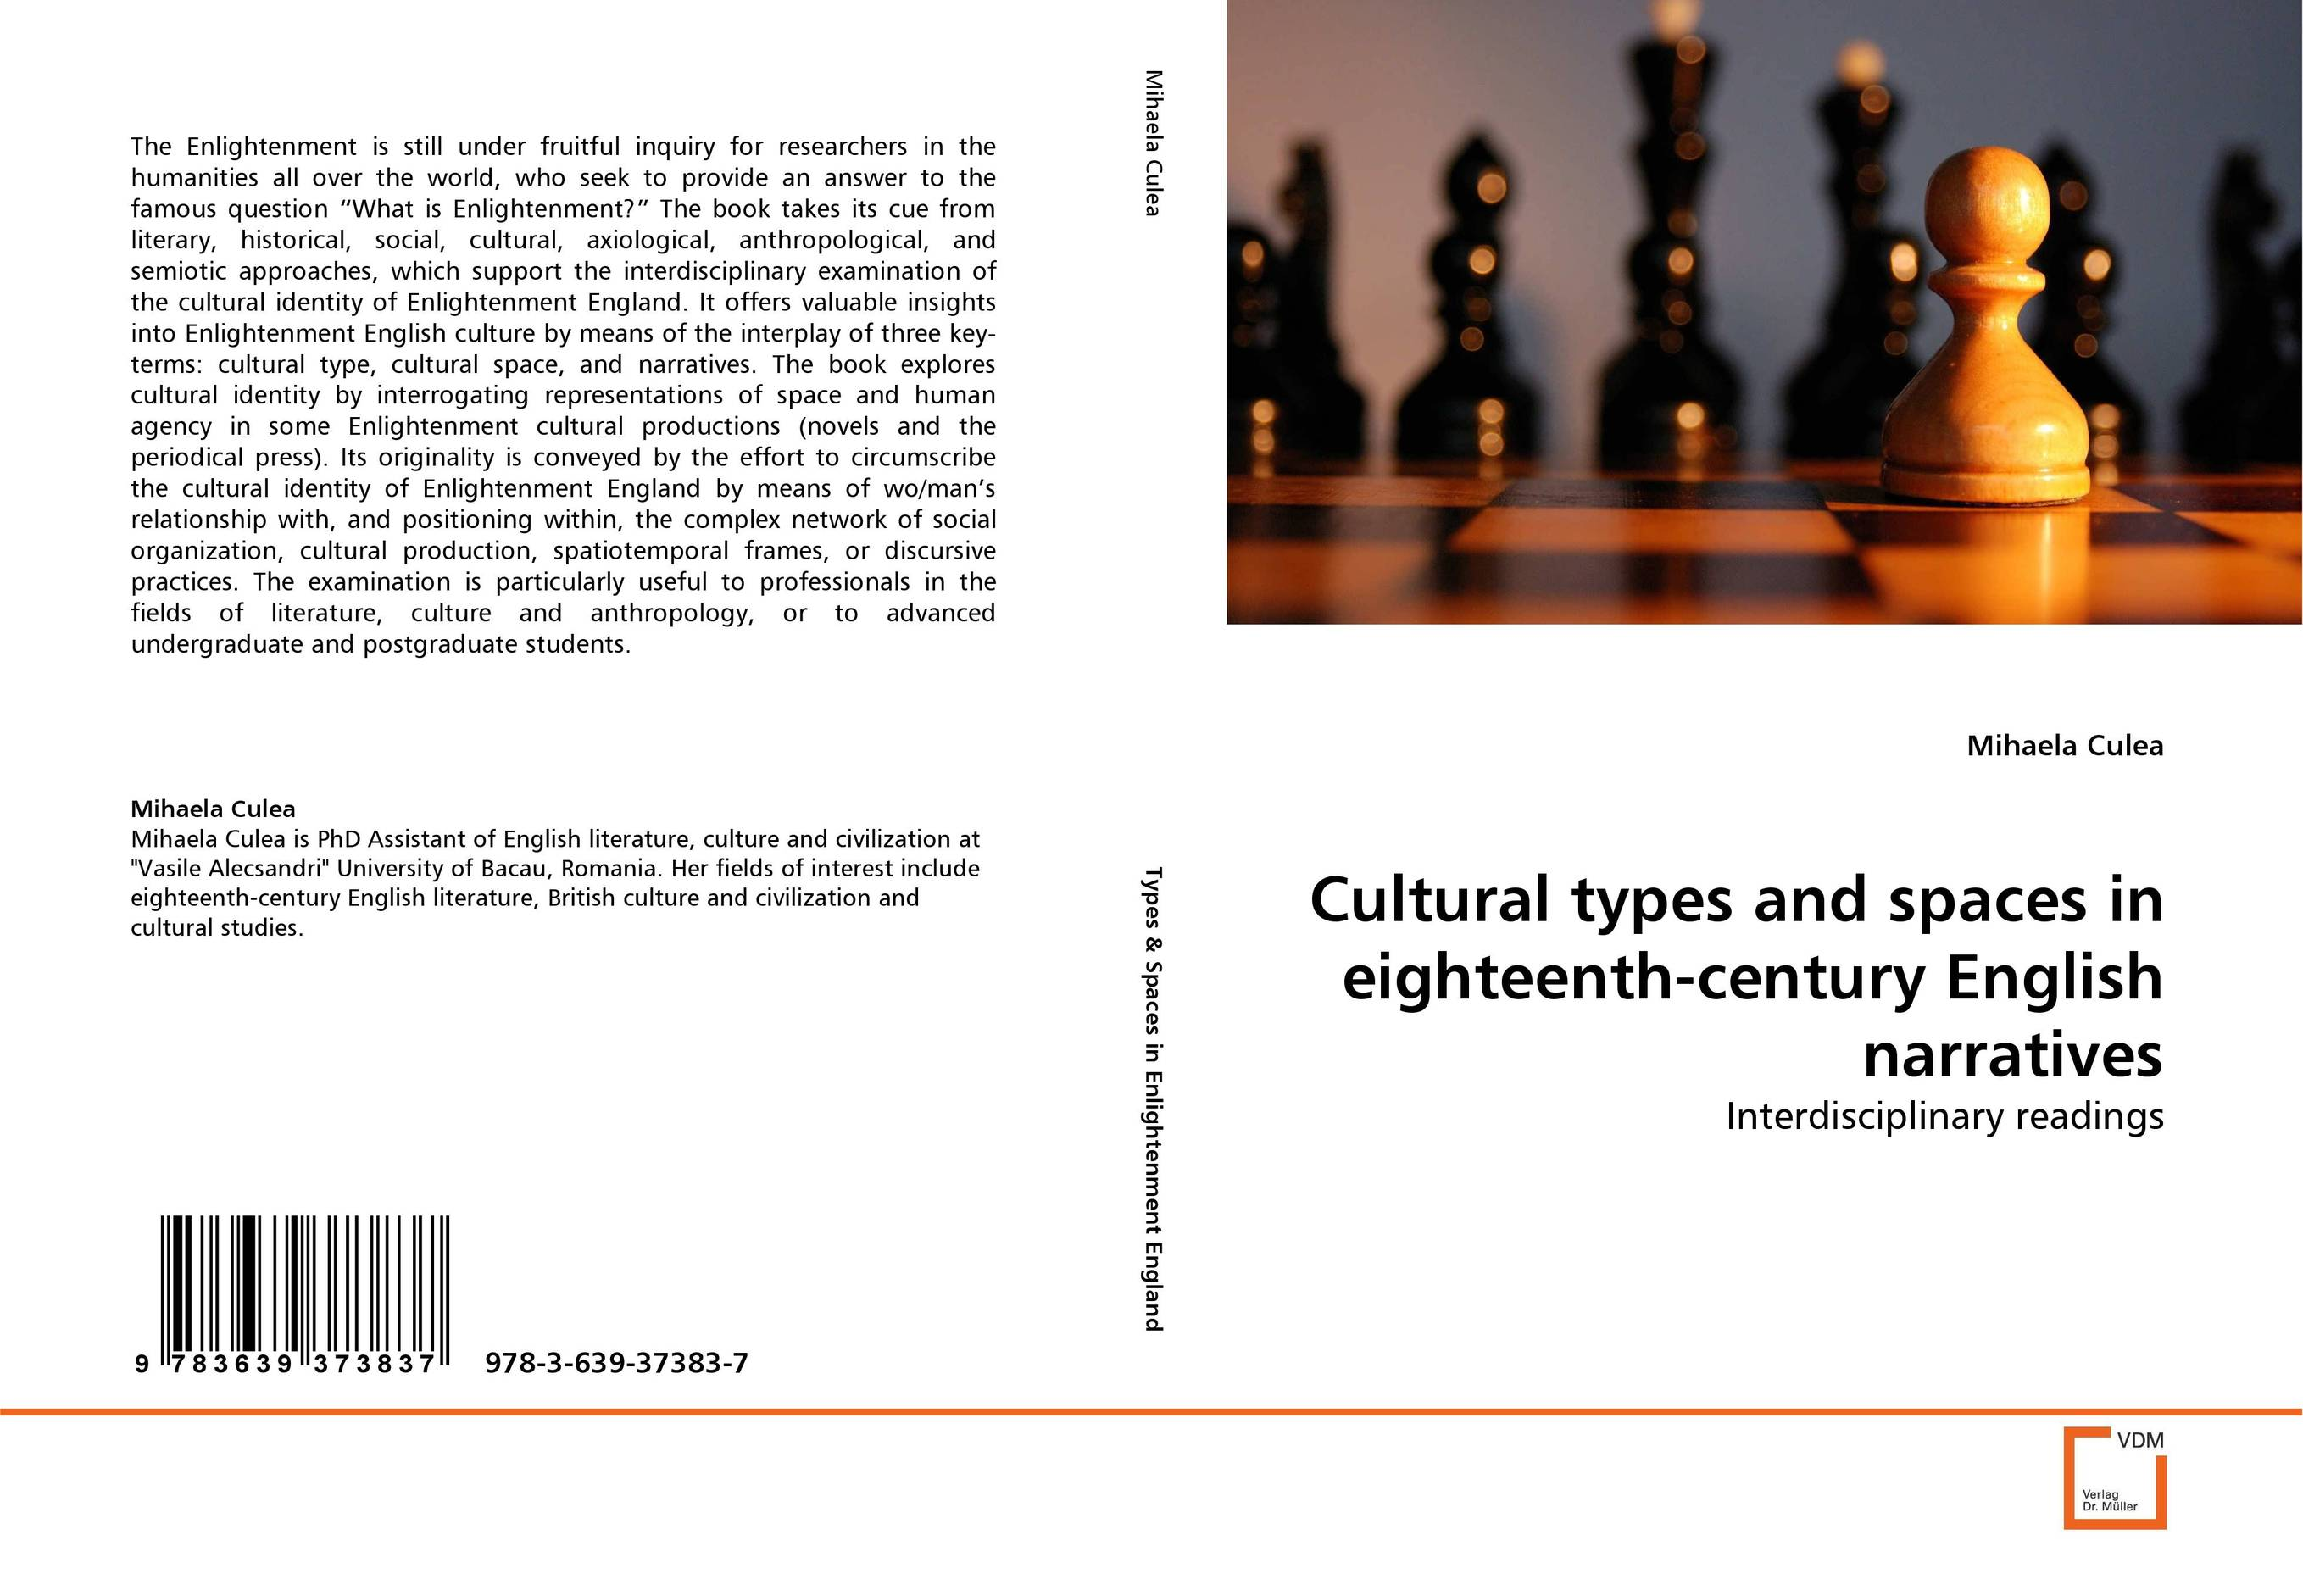 Cultural types and spaces in eighteenth-century English narratives cc527 60001 cc527 69002 formatter main logic board for hp laserjet p2055 p2055d used plotter part